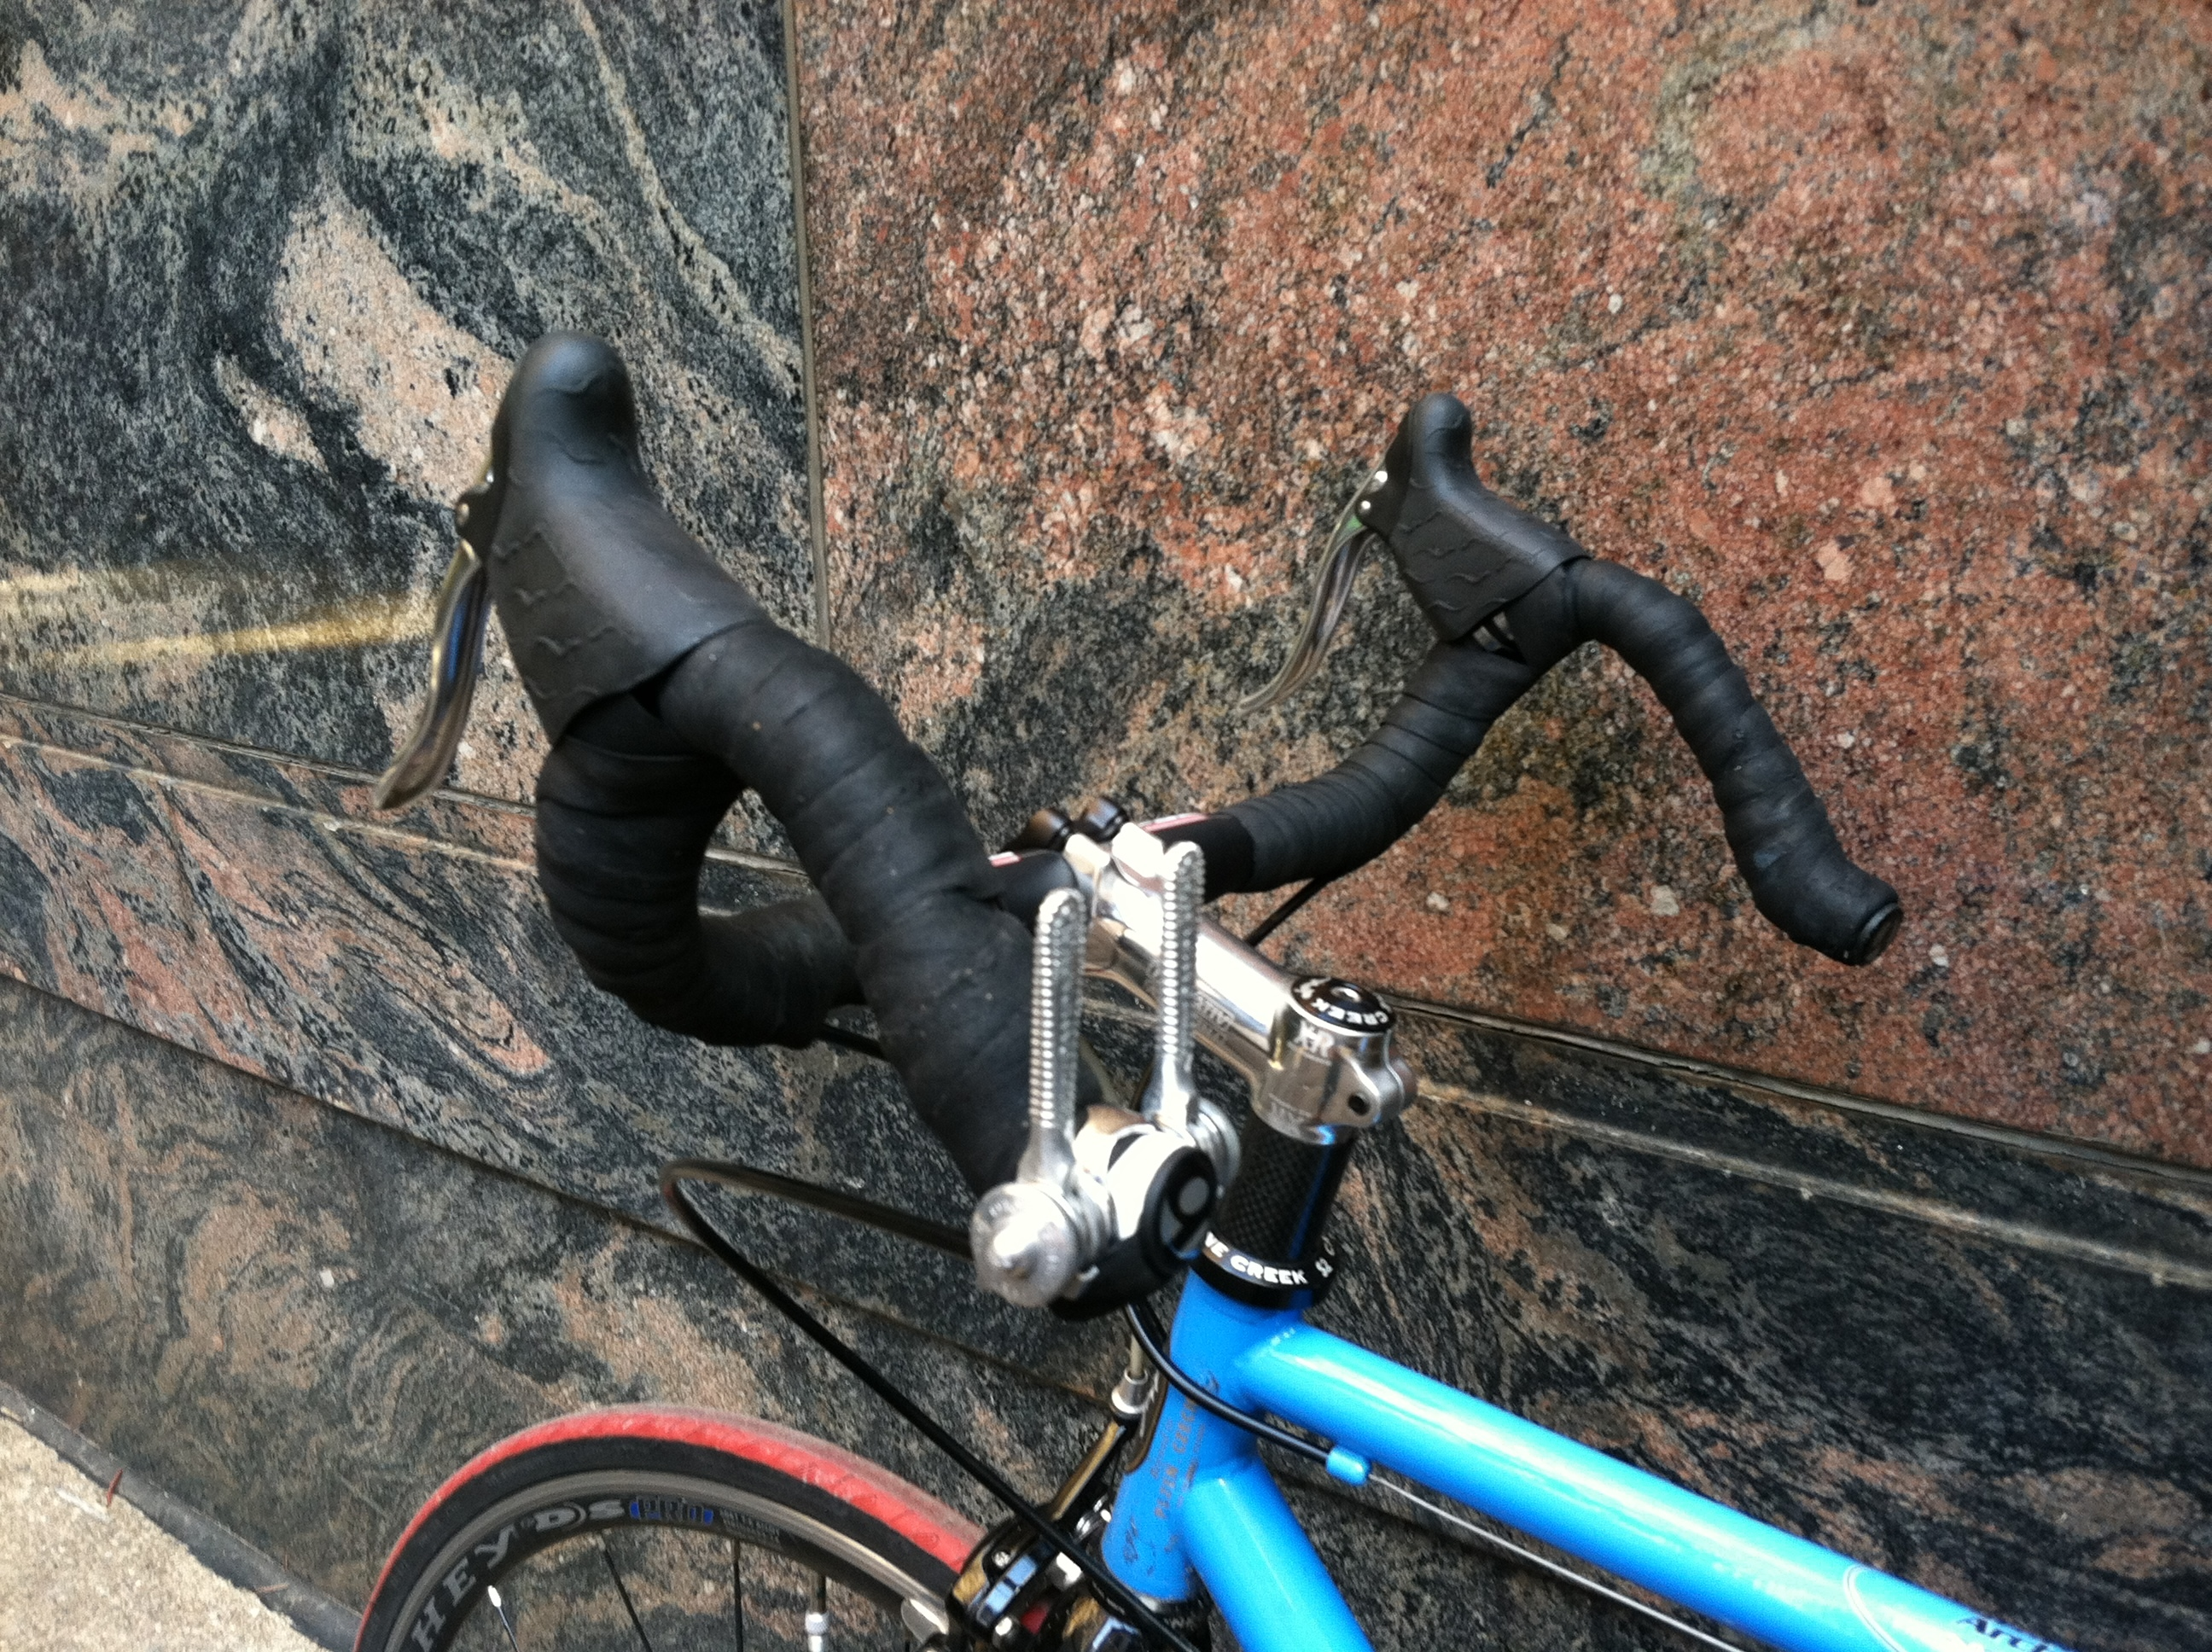 Bikes Handlebar Brake Facts Hooded brake levers and Campy